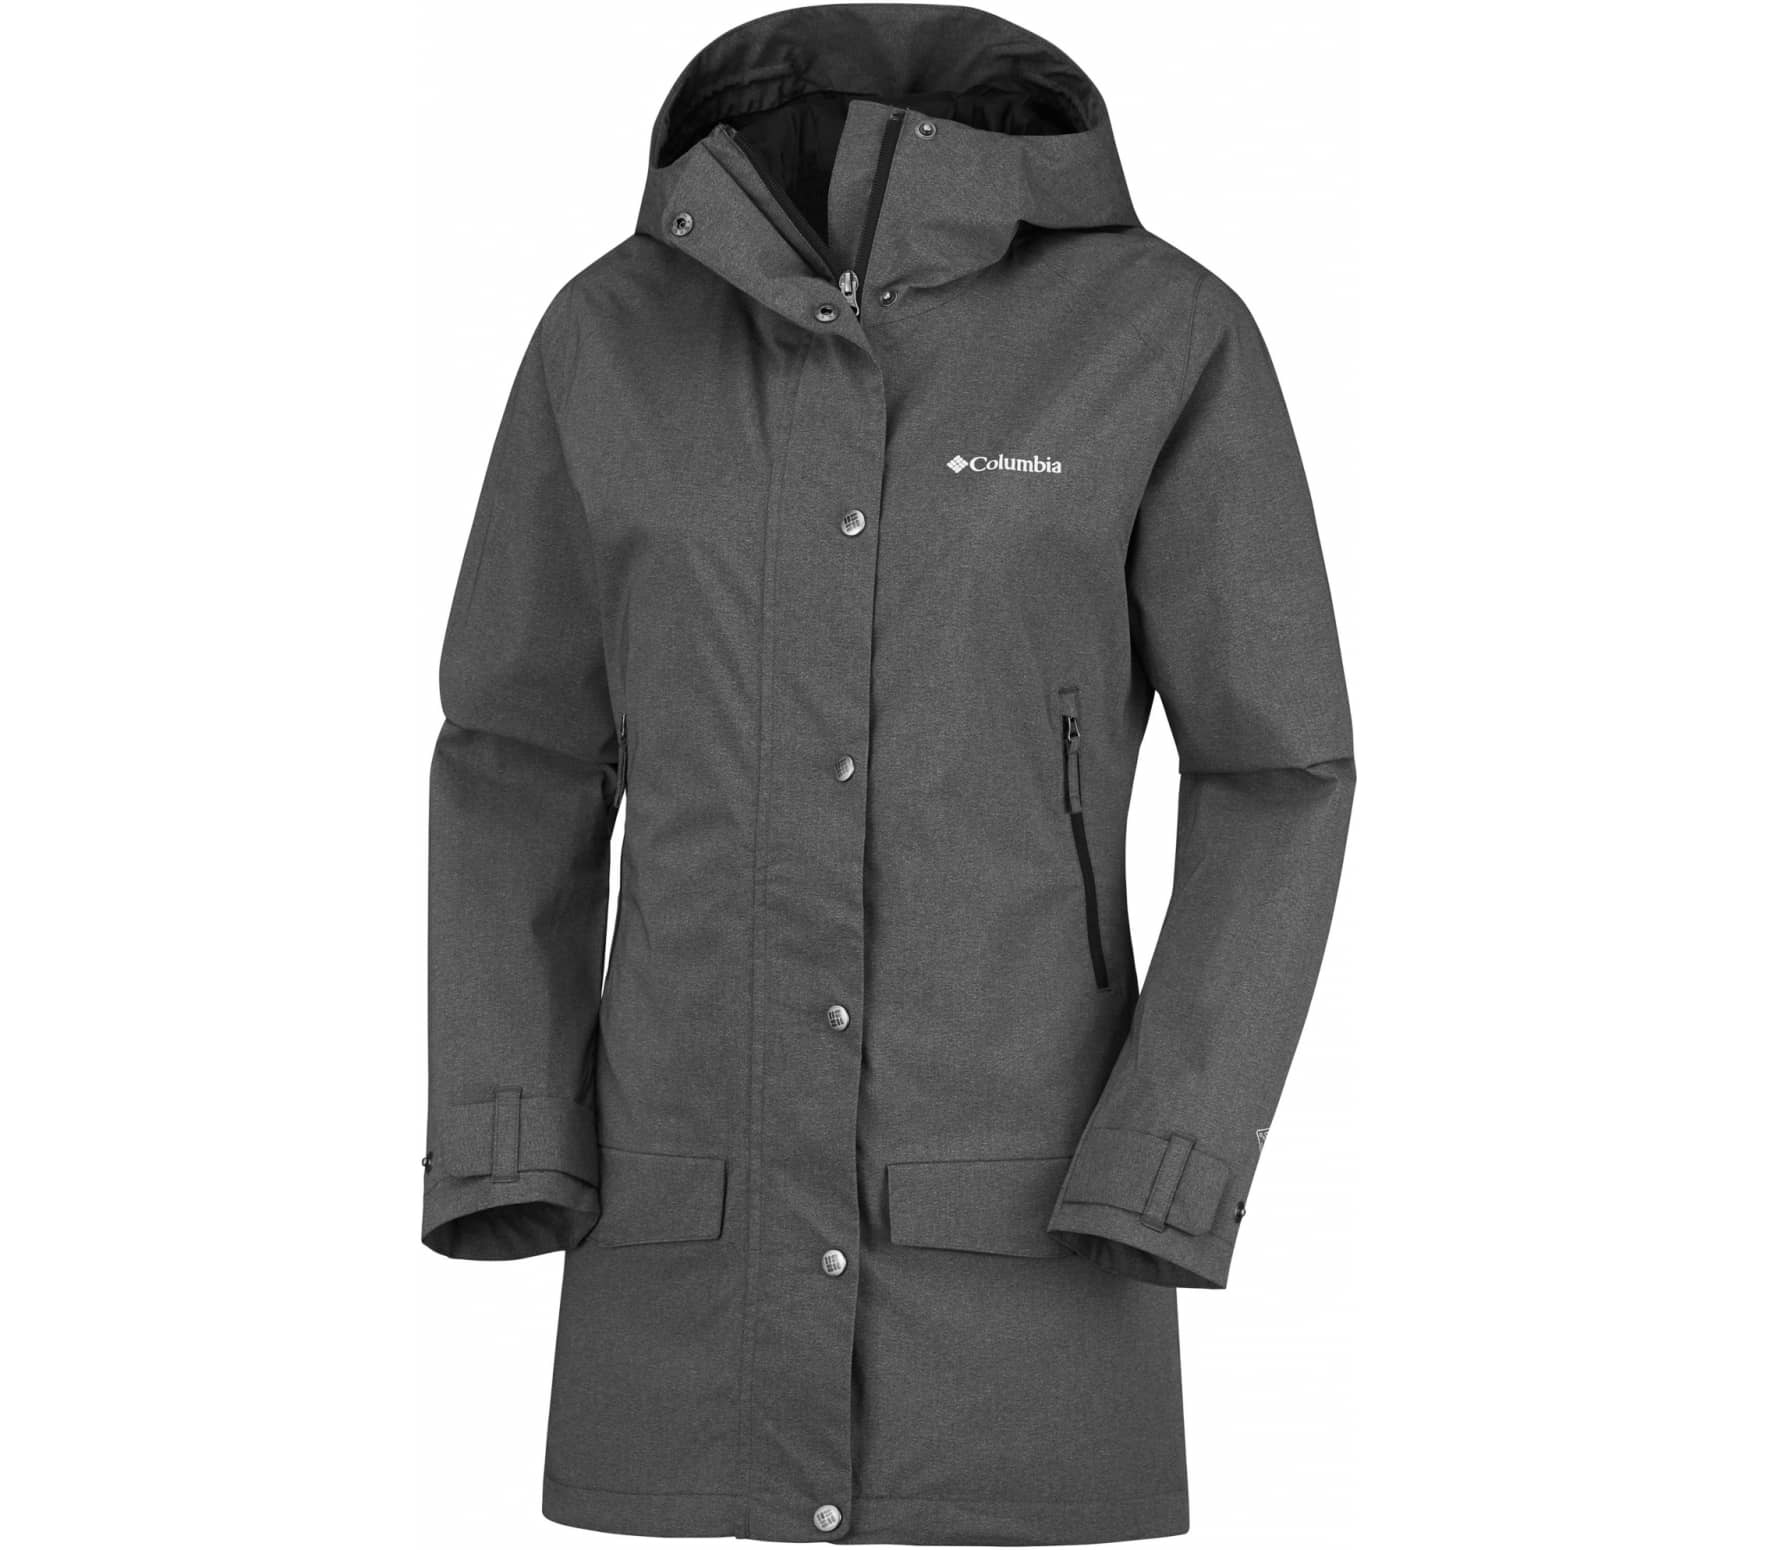 Rainy Creek Damen Parka (schwarz) - M